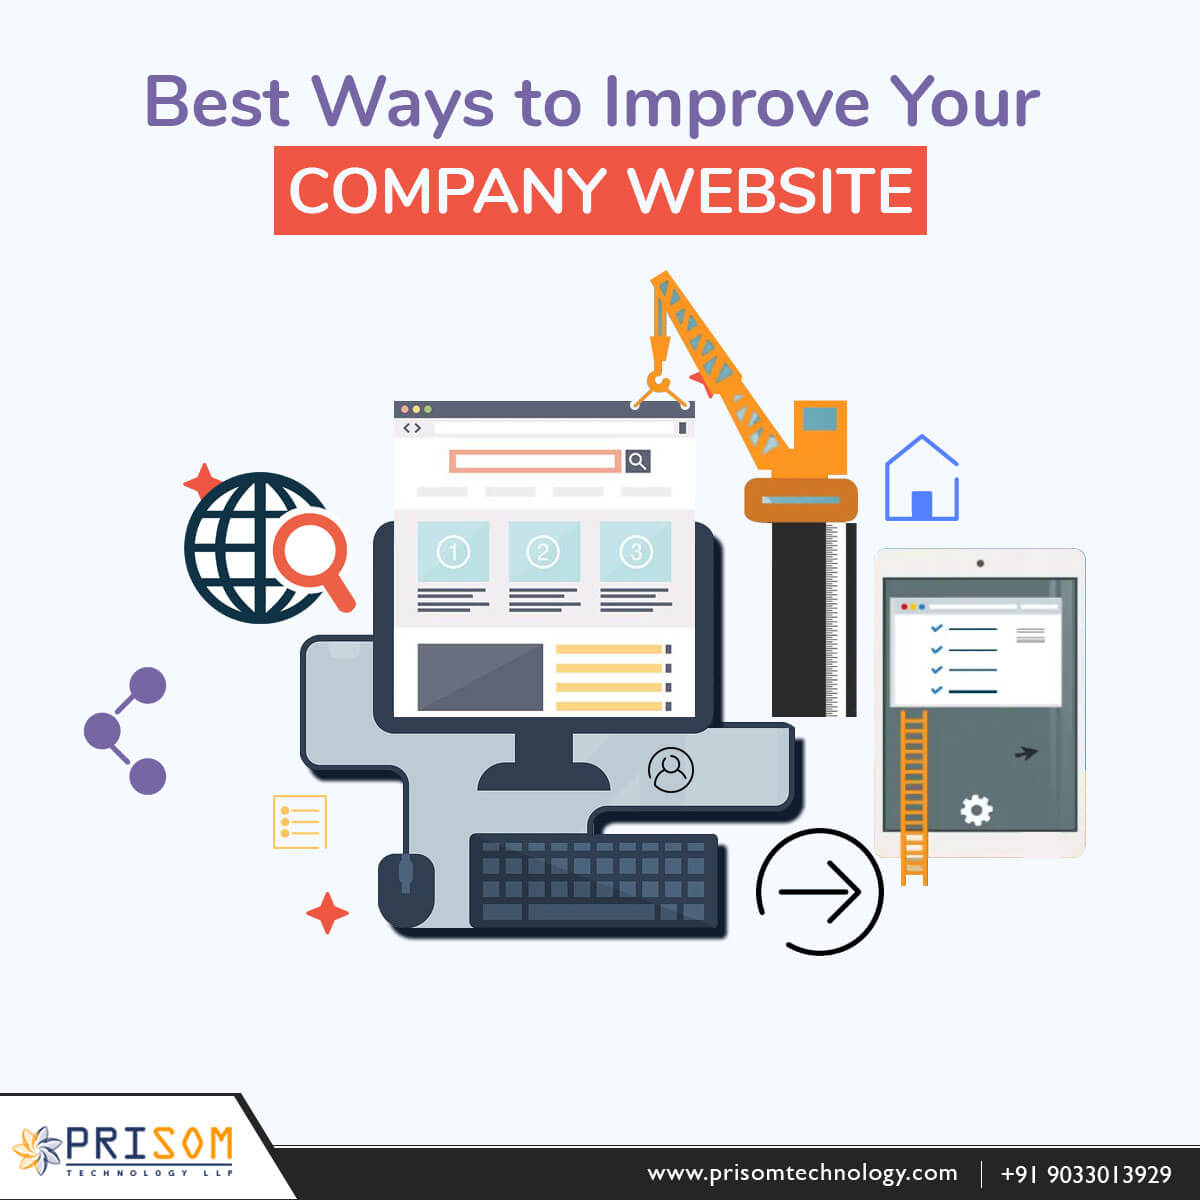 BEST WAYS TO IMPROVE YOUR COMPANY WEBSITE